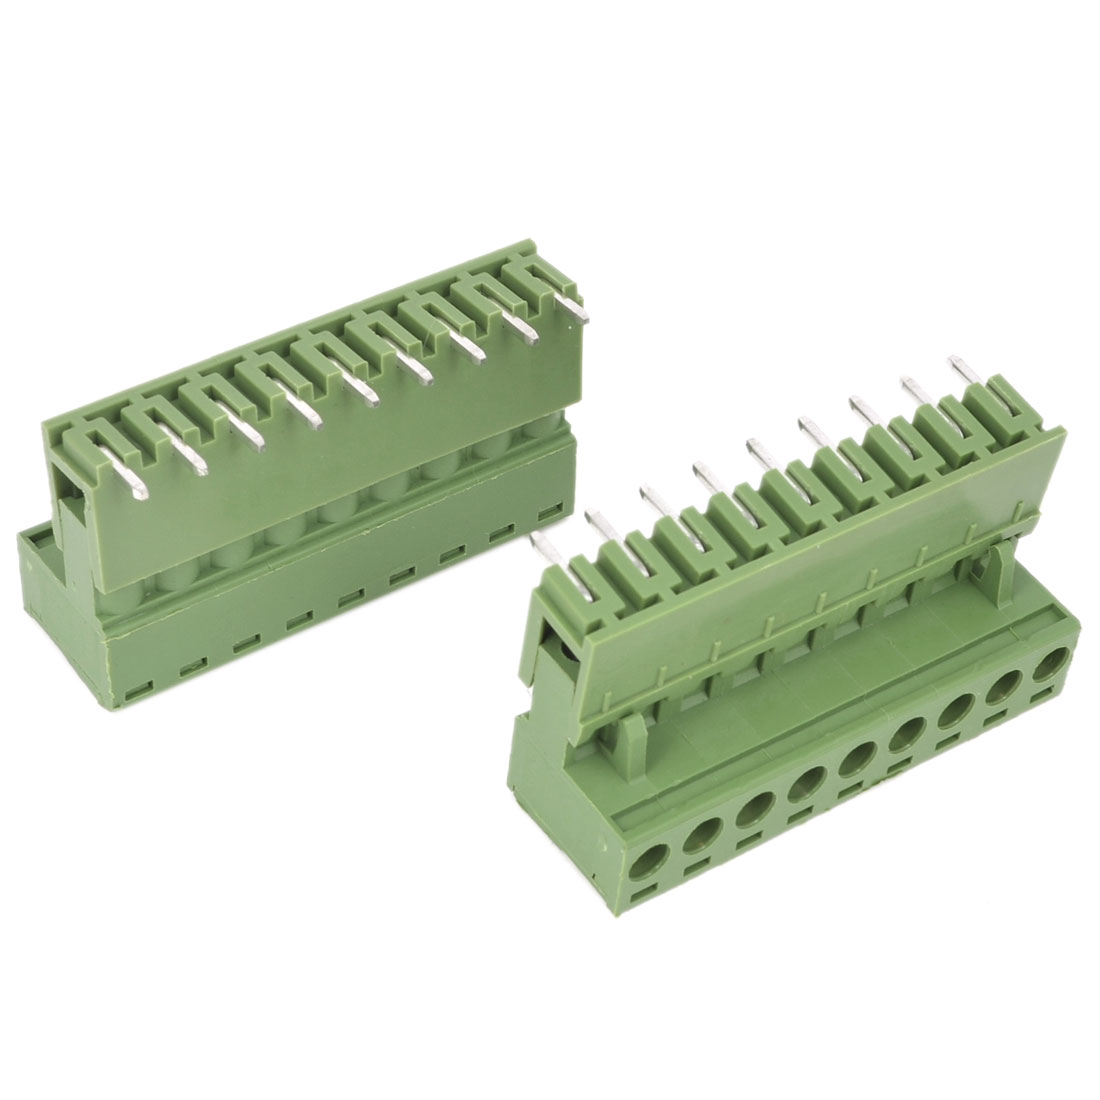 2 Pcs AC 300V 10A 9P Pins PCB Screw Terminal Block Connector 5.08mm Pitch Army Green